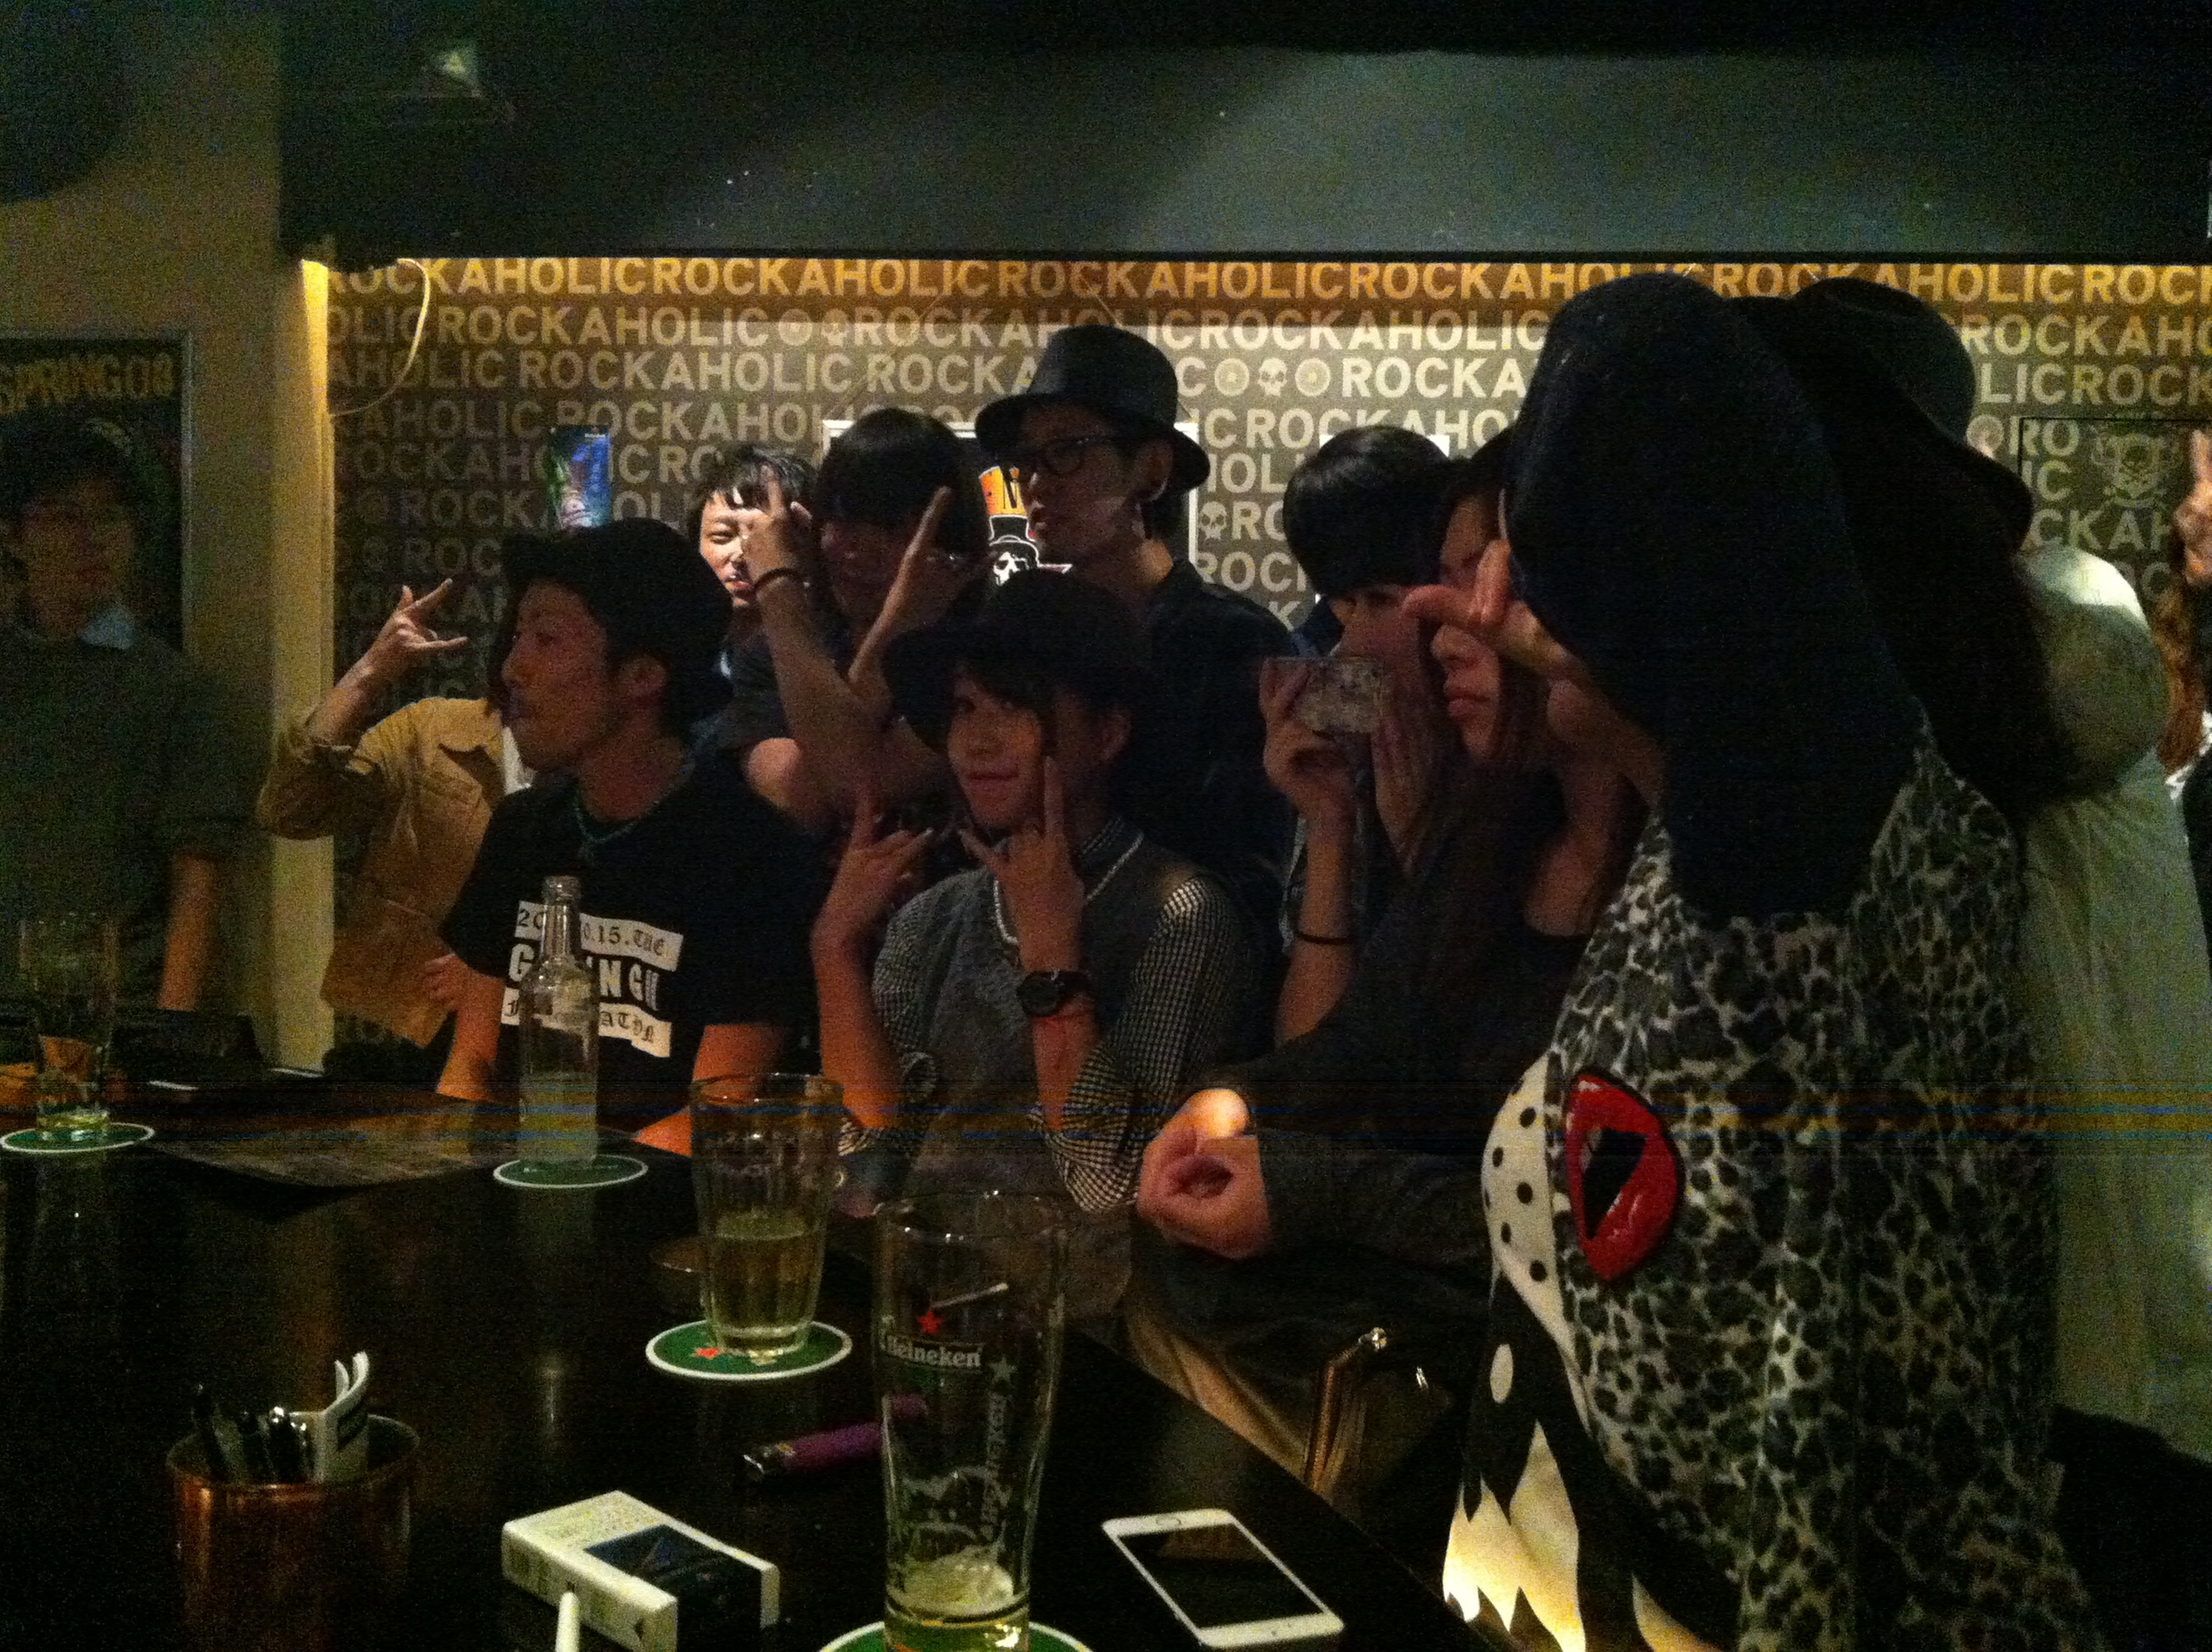 Shibuya  punk rock bar culture